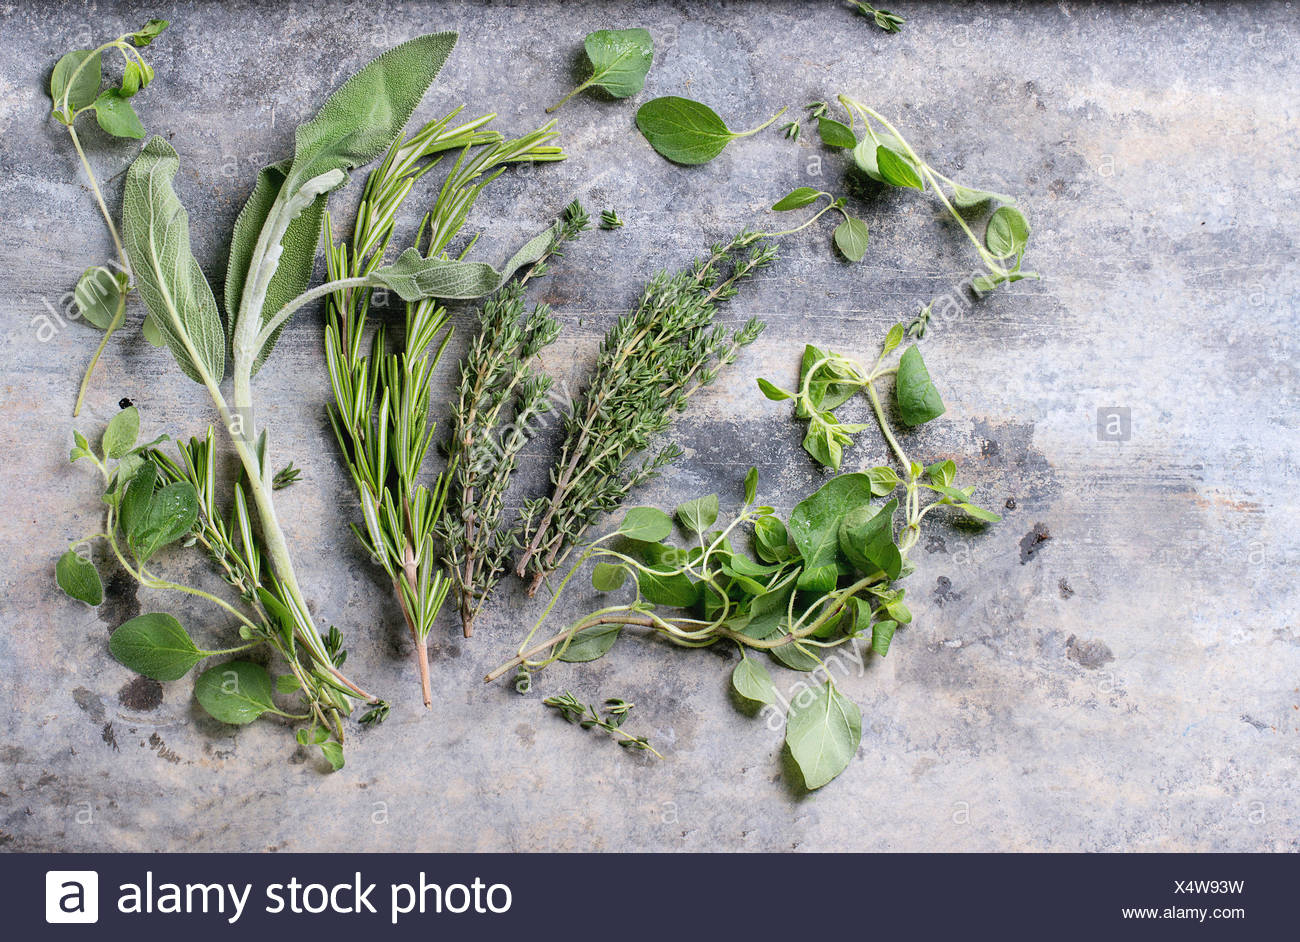 Assortment of fresh herbs thyme, rosemary, sage and oregano over gray metal background. Top view - Stock Image